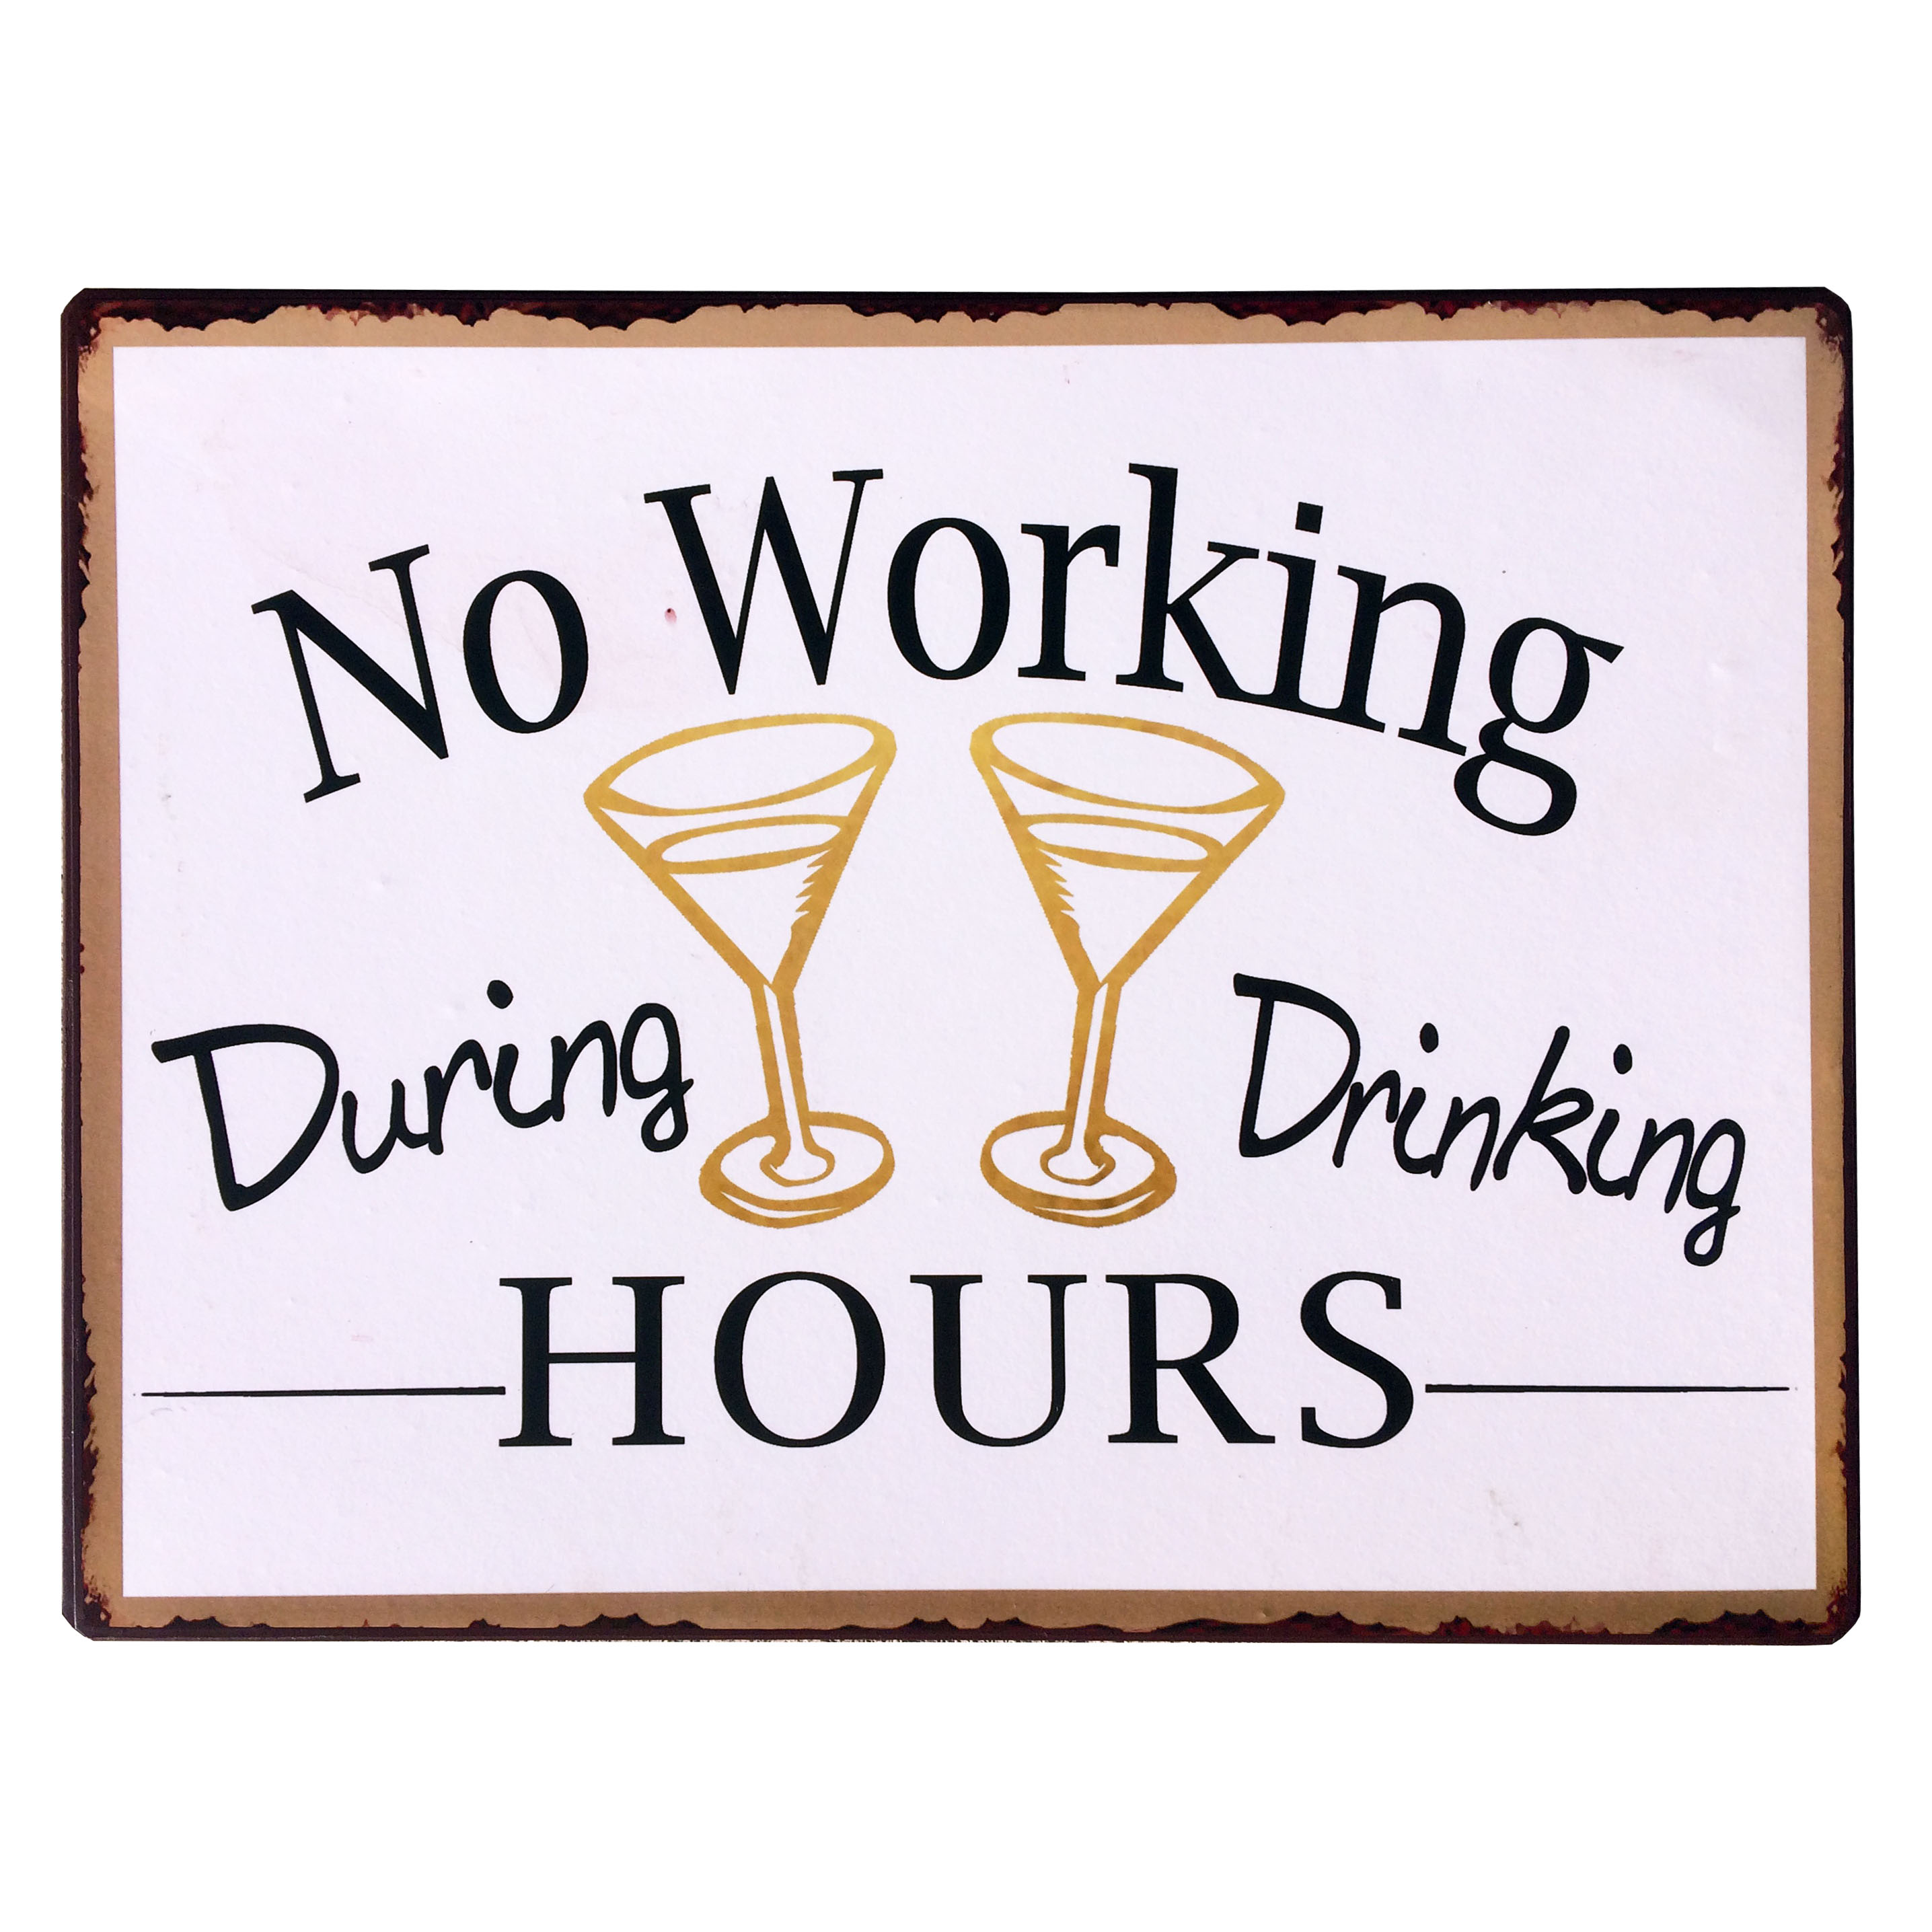 em5463-no working during drinking hours-rustiek-tekst-bord-cadeau-kado-online-metaal-deco-decoratie-